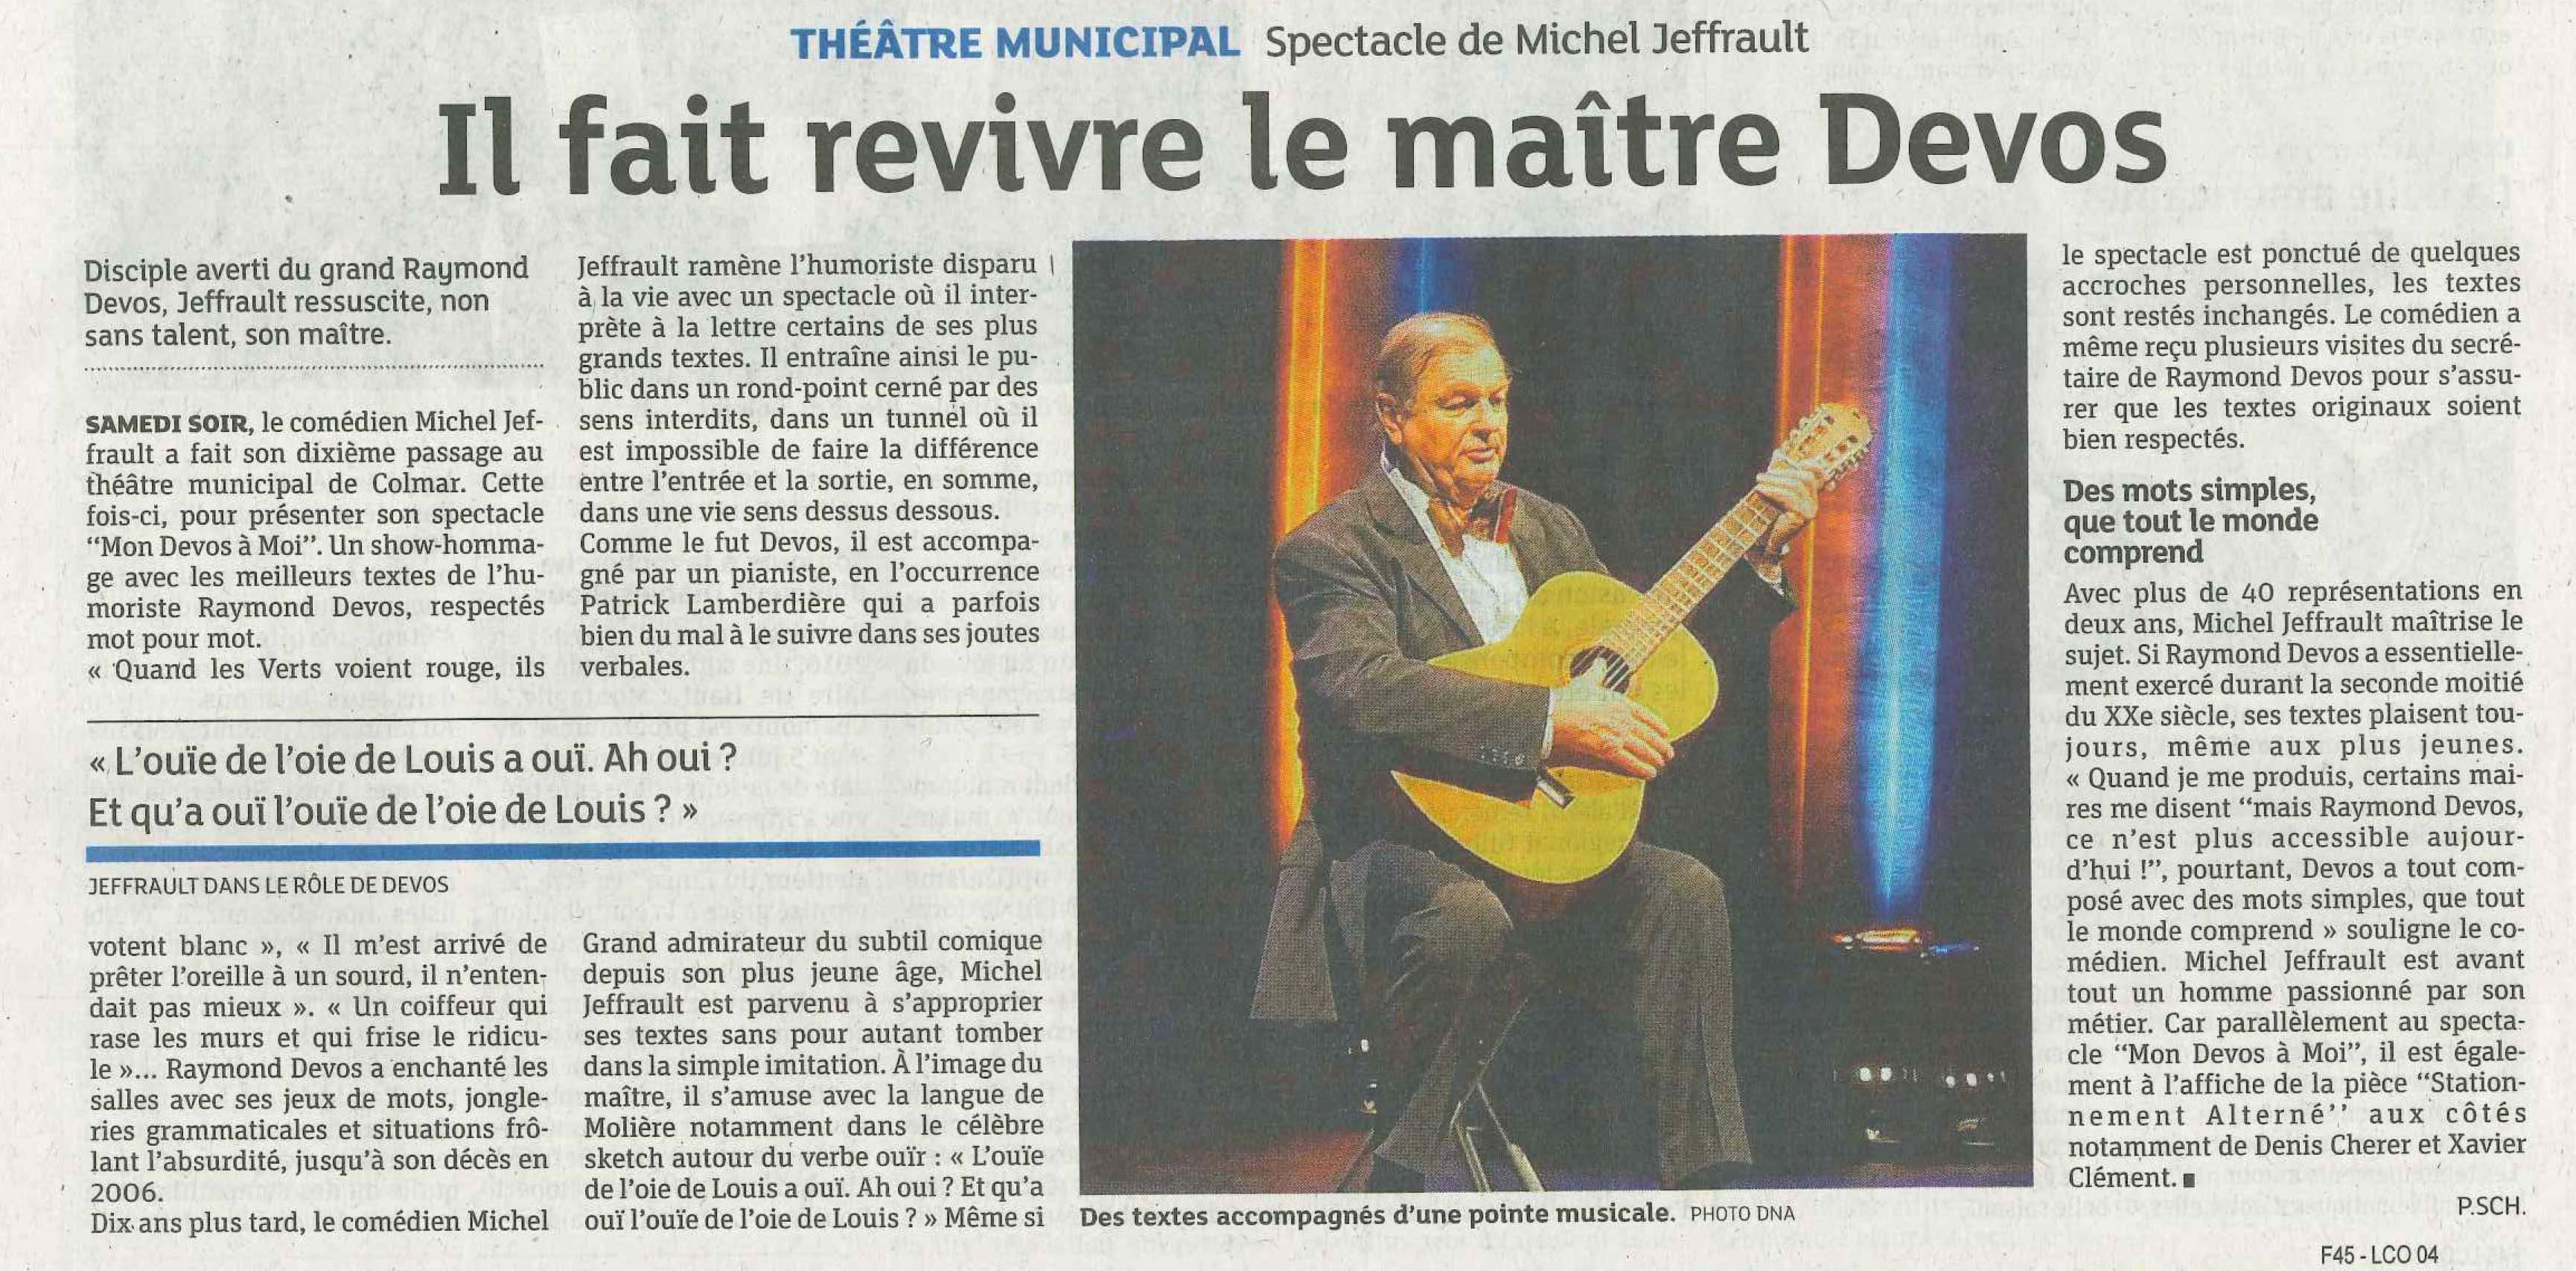 Devosàmoi.DNA.7mars2016 (2)